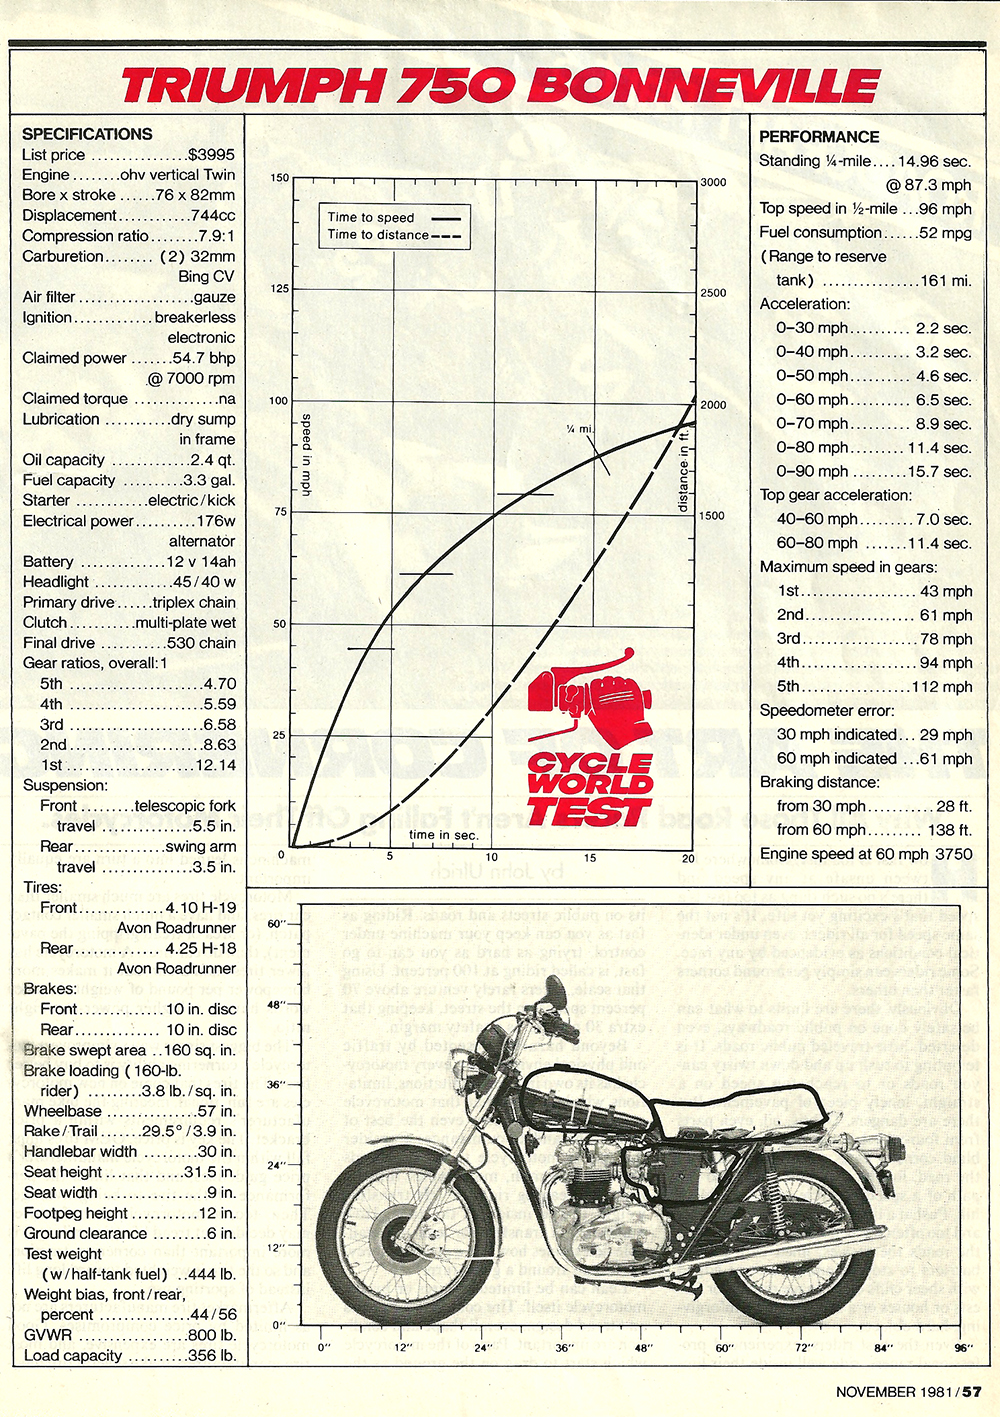 1981 Triumph 750 Bonneville road test 6.jpg